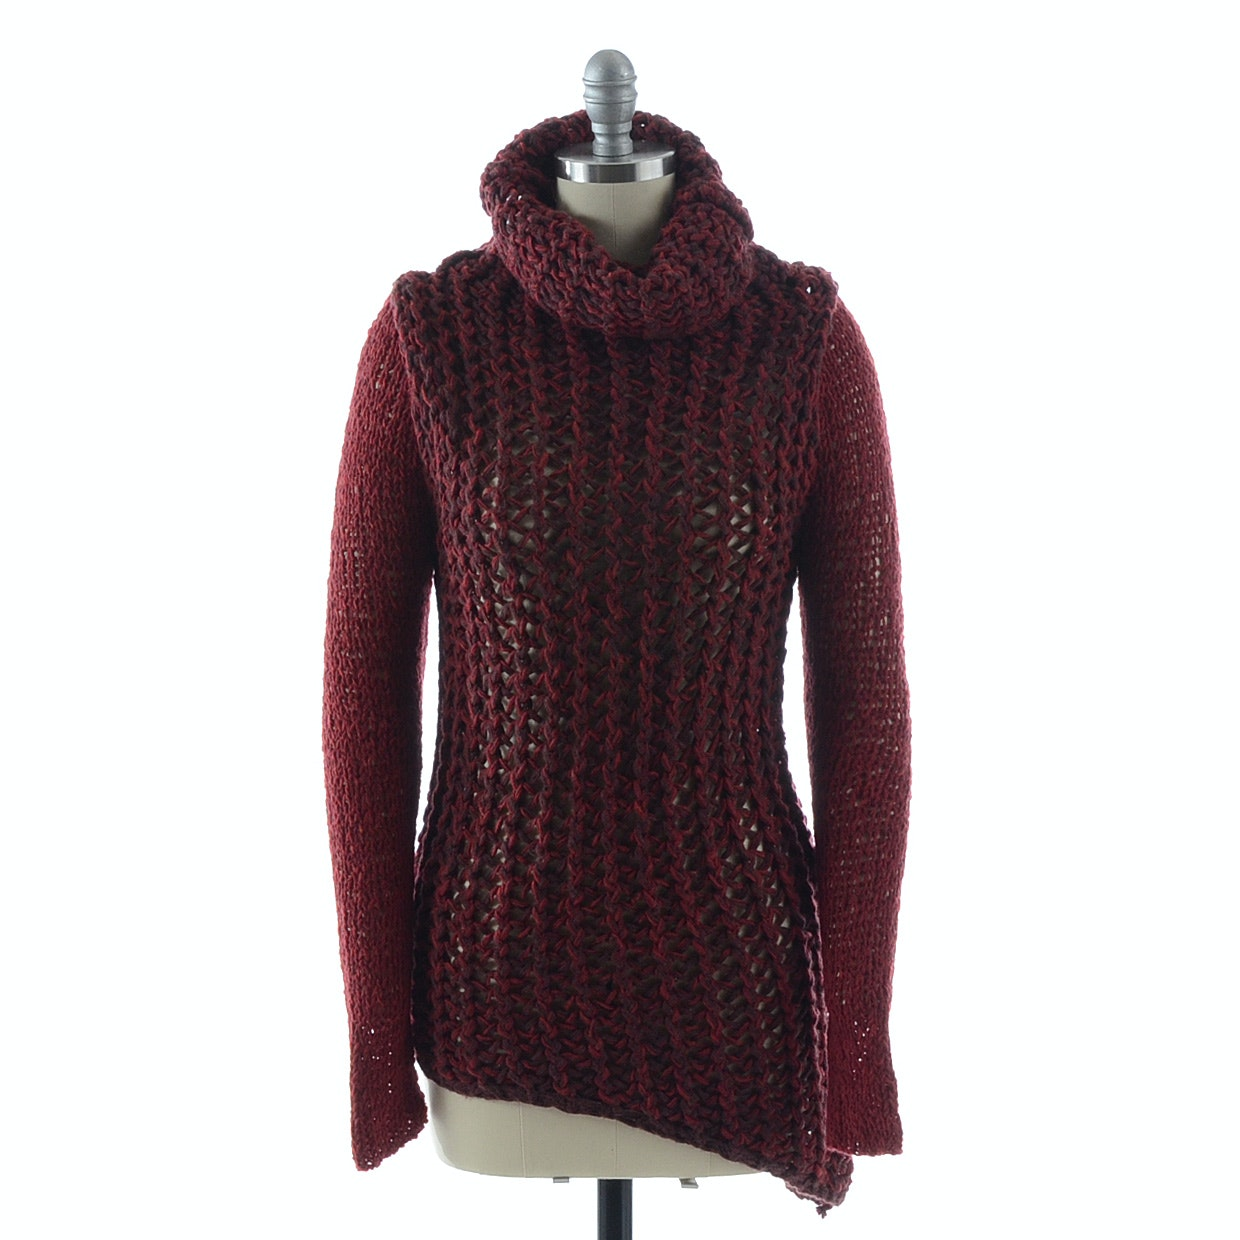 Helmut Lang Turtleneck Open Knit Asymmetrical Sweater in Merlot